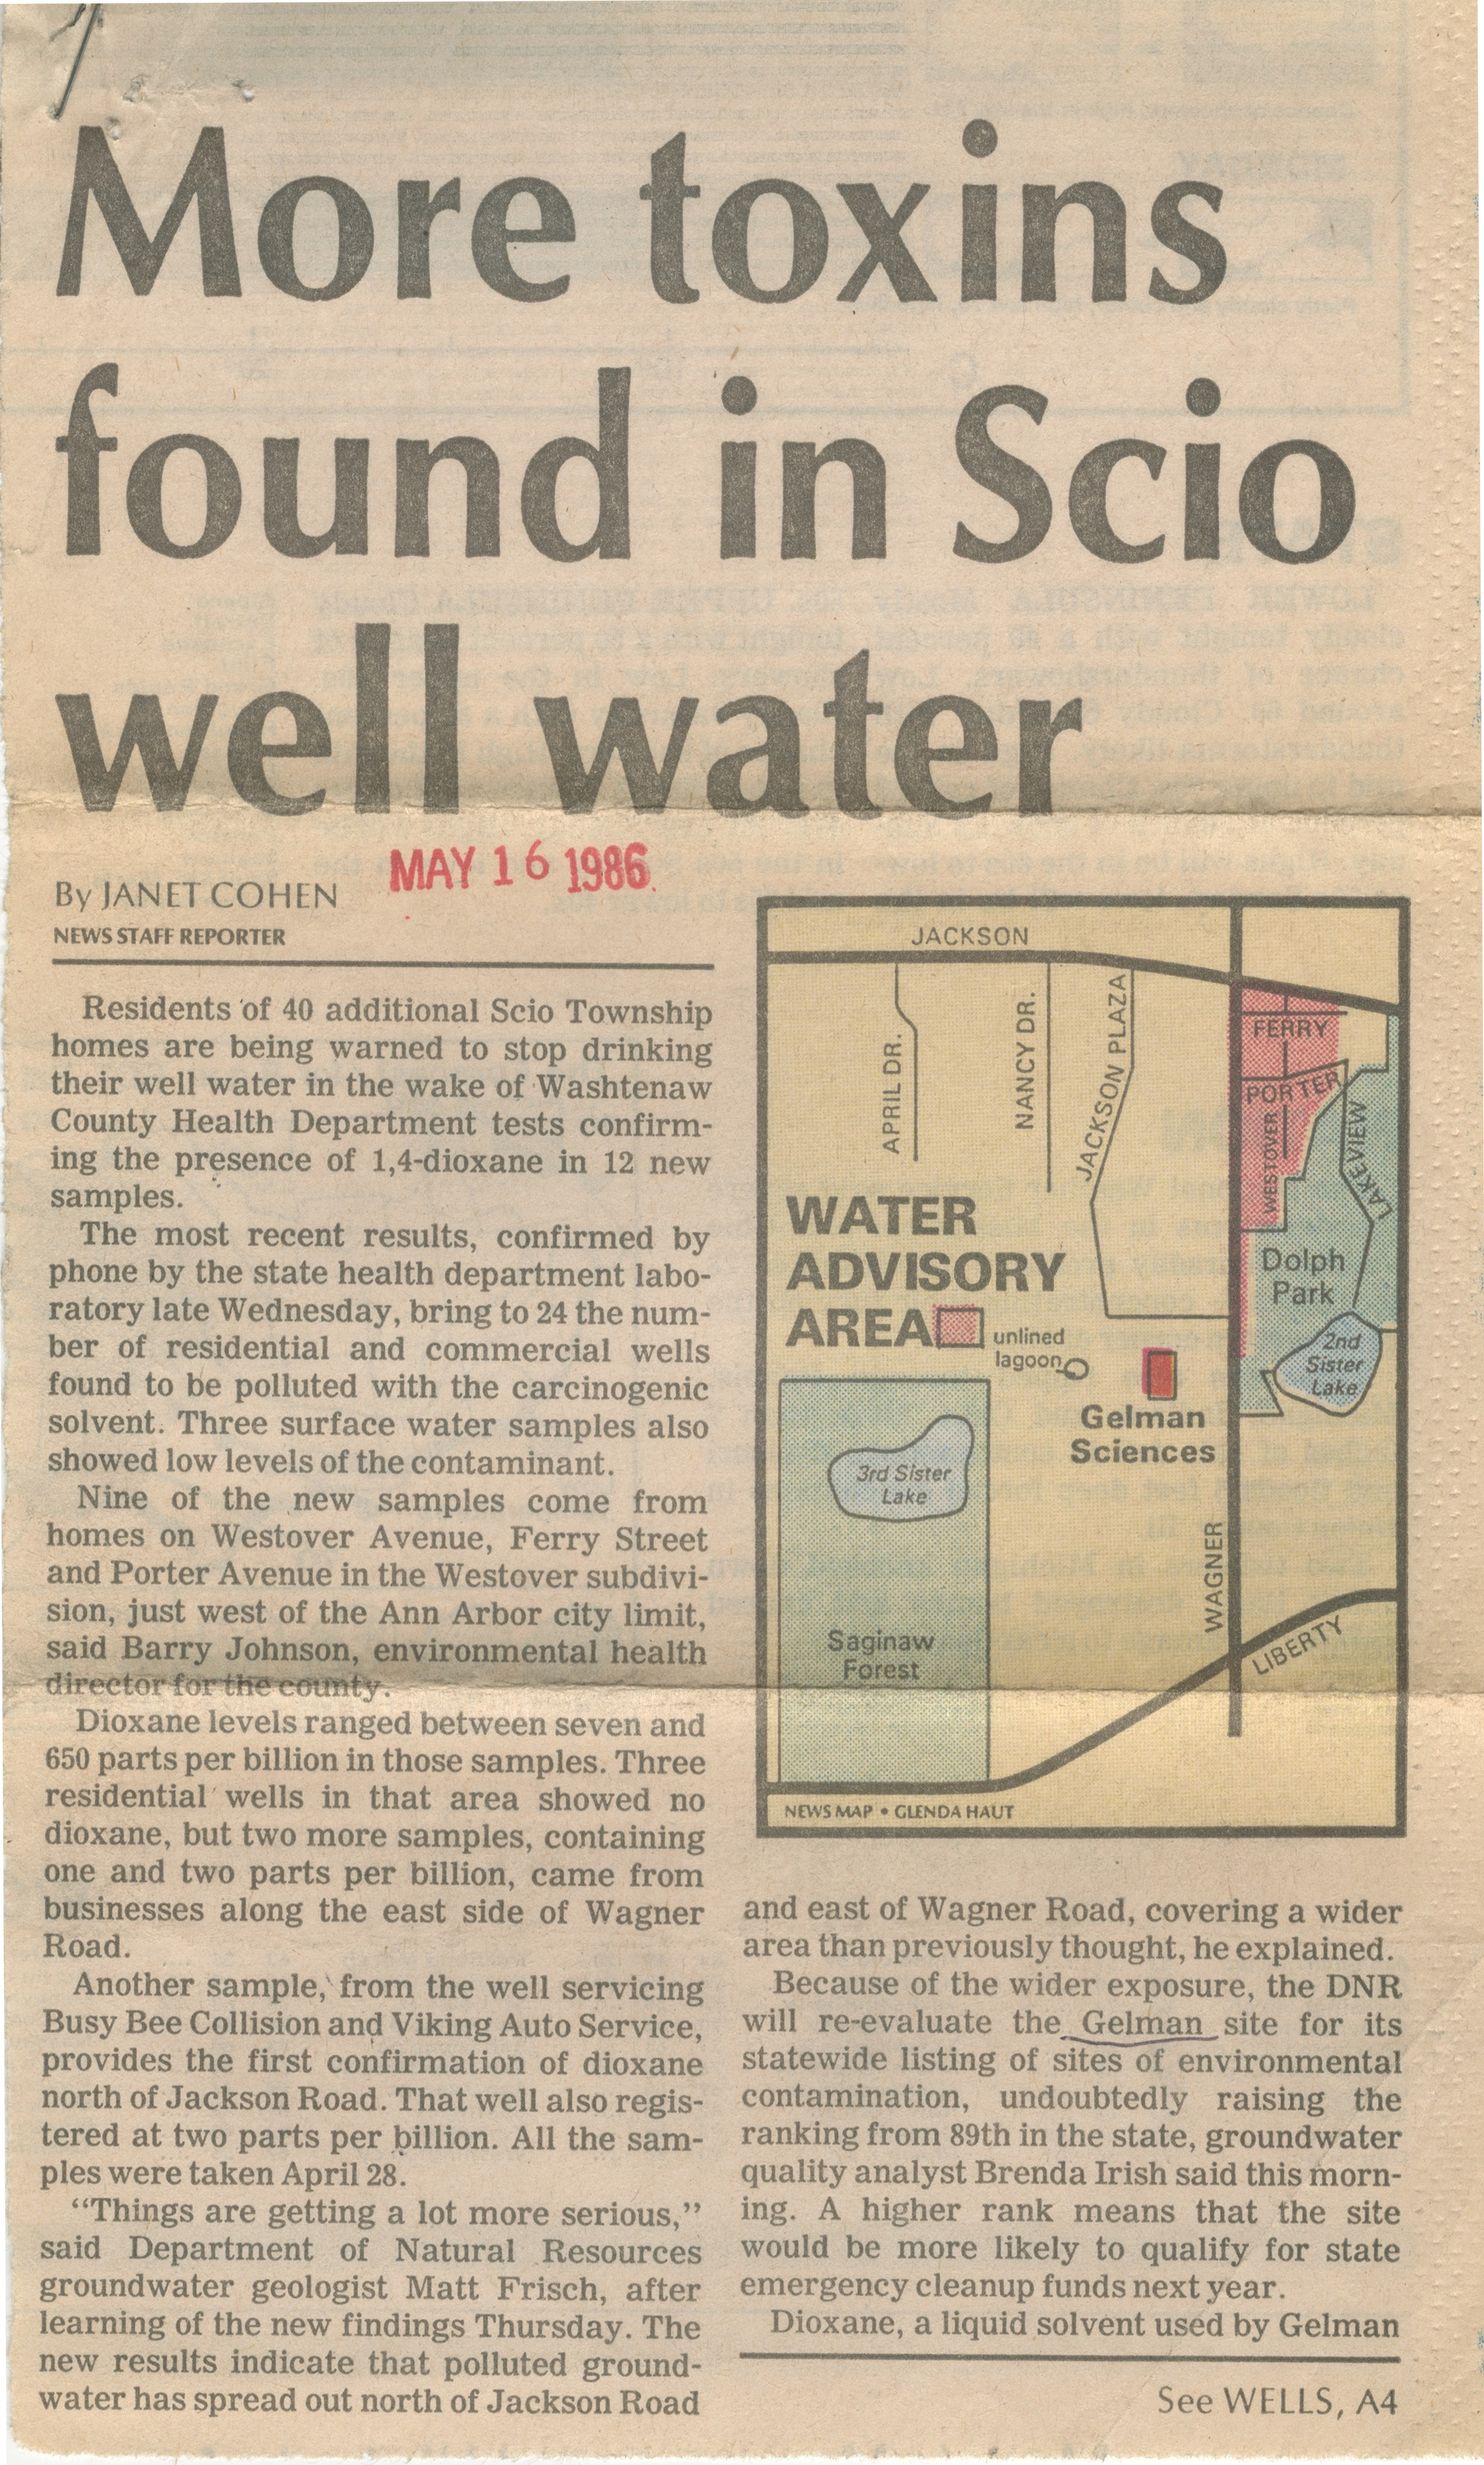 More Toxins Found In Scio Well Water image